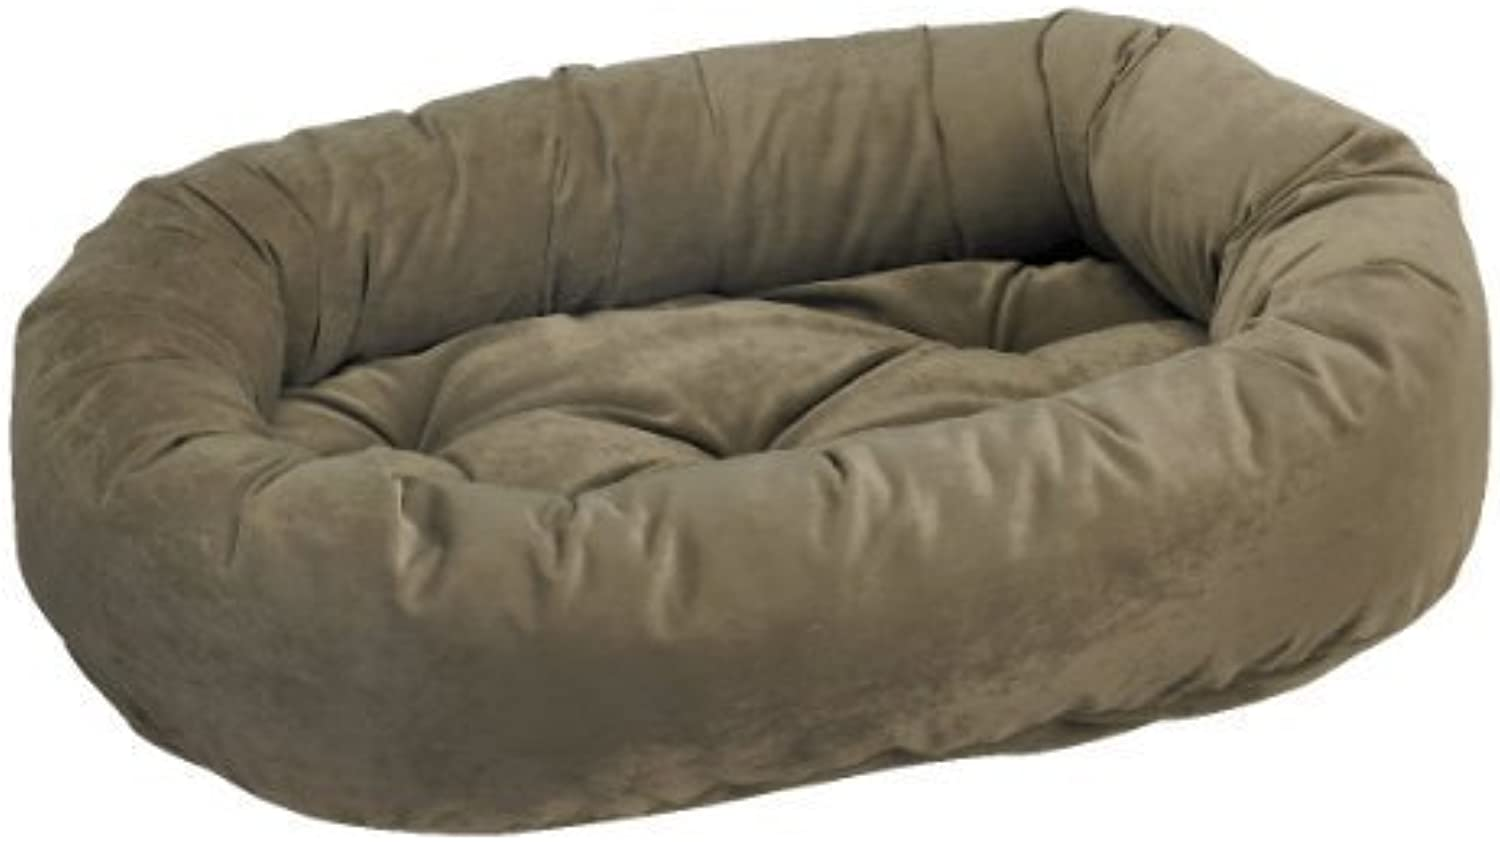 Bowser Donut Bed, XXLarge, Thyme